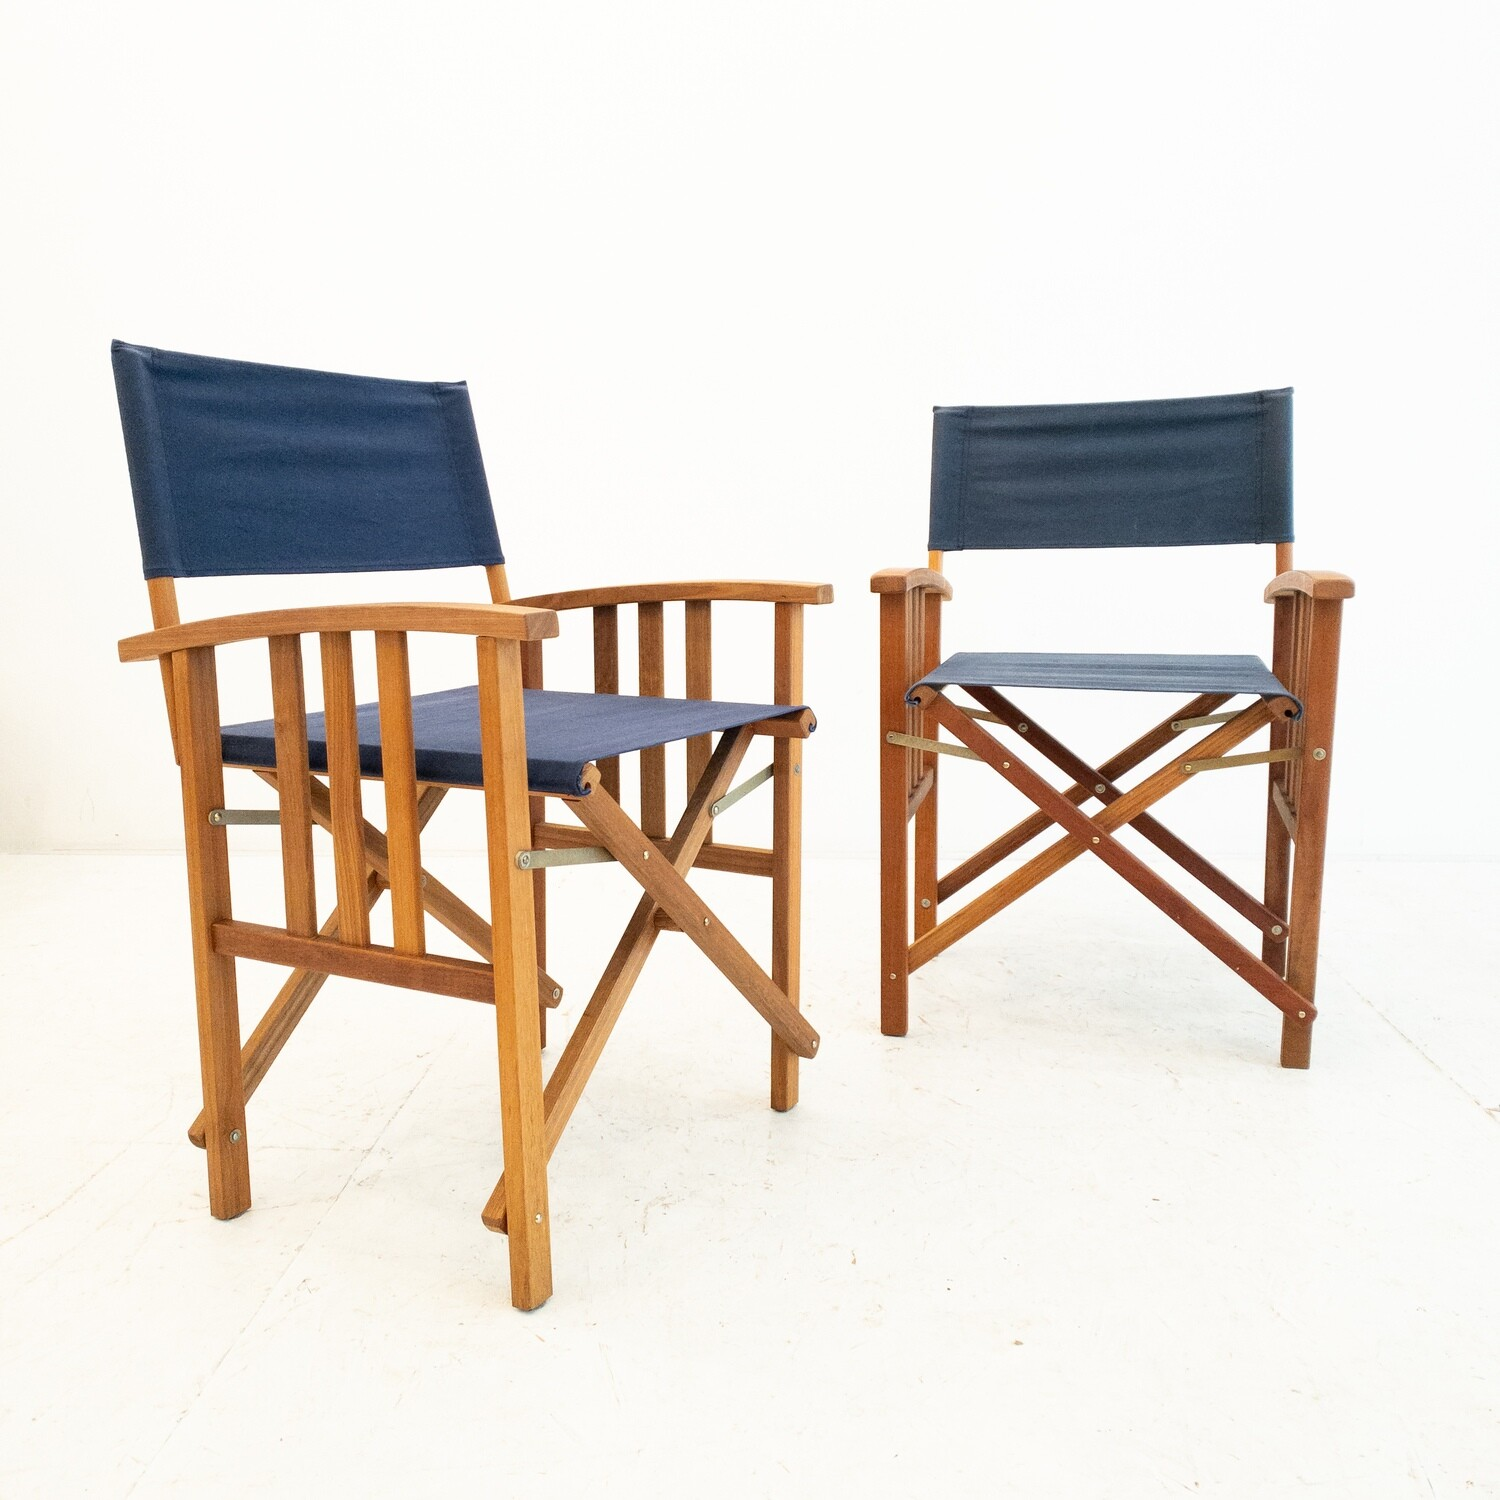 Pair of director's chairs